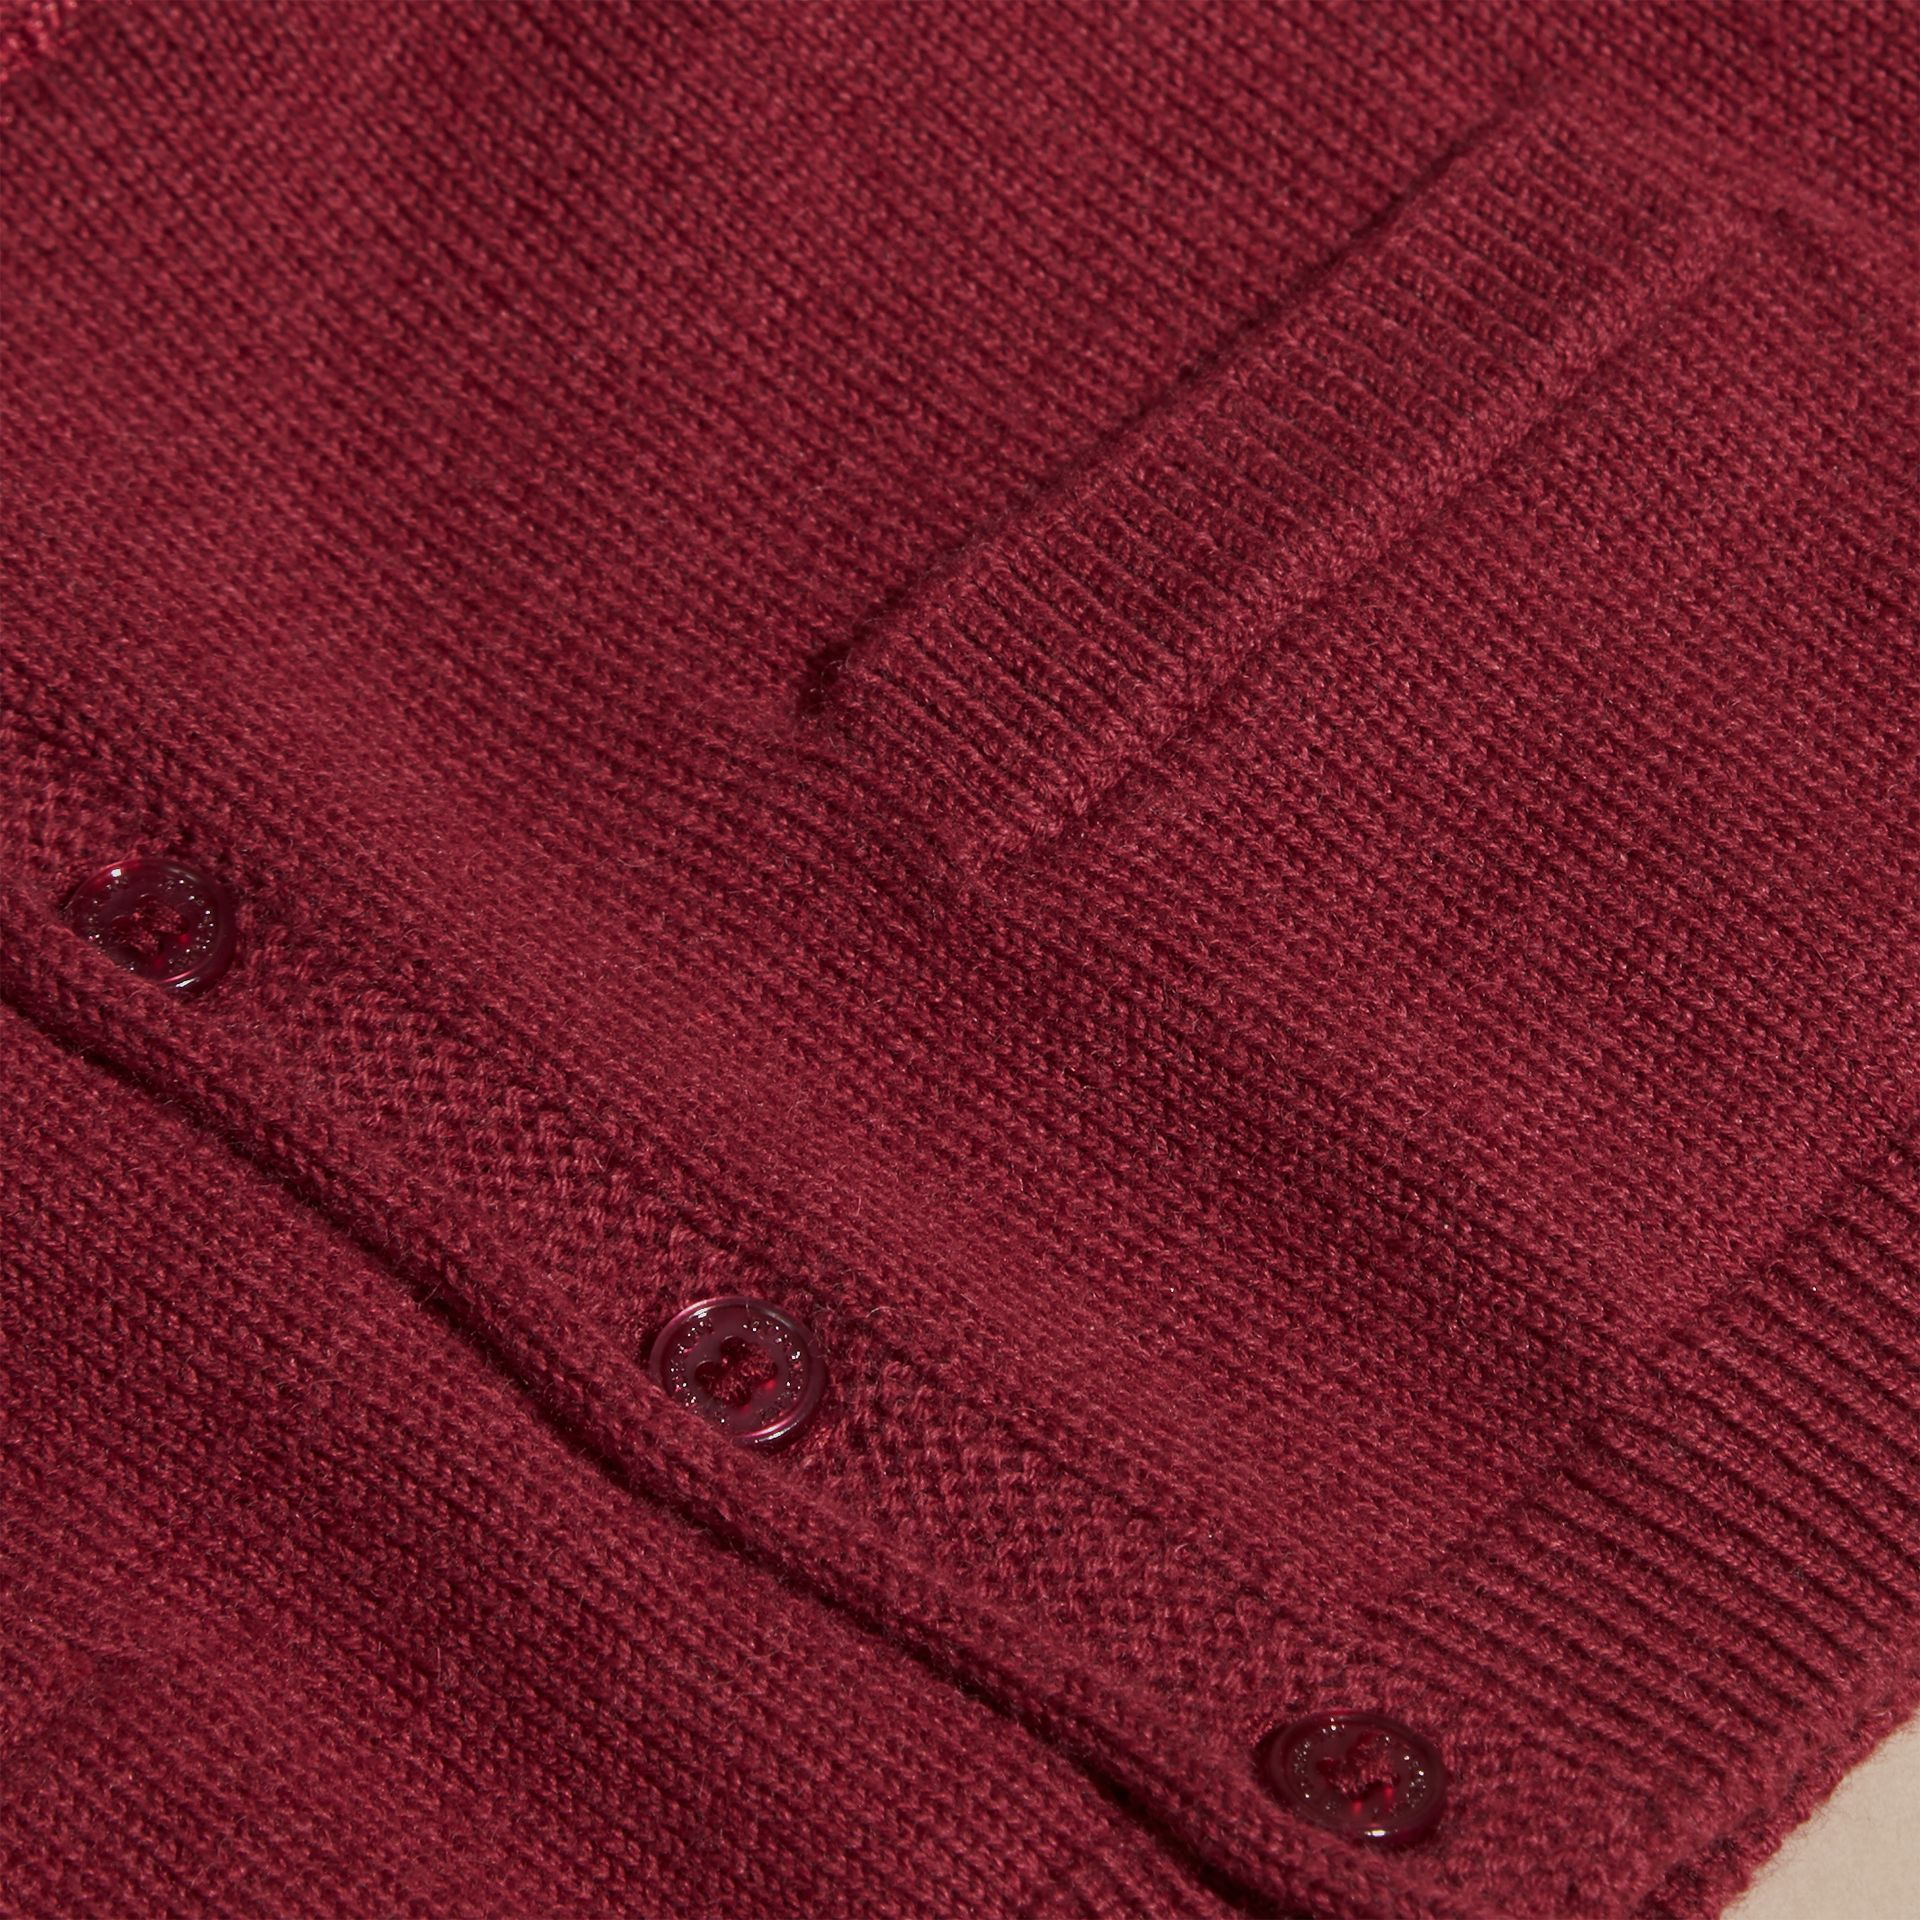 Dark plum pink V-neck Cashmere Cotton Cardigan Dark Plum Pink - gallery image 2